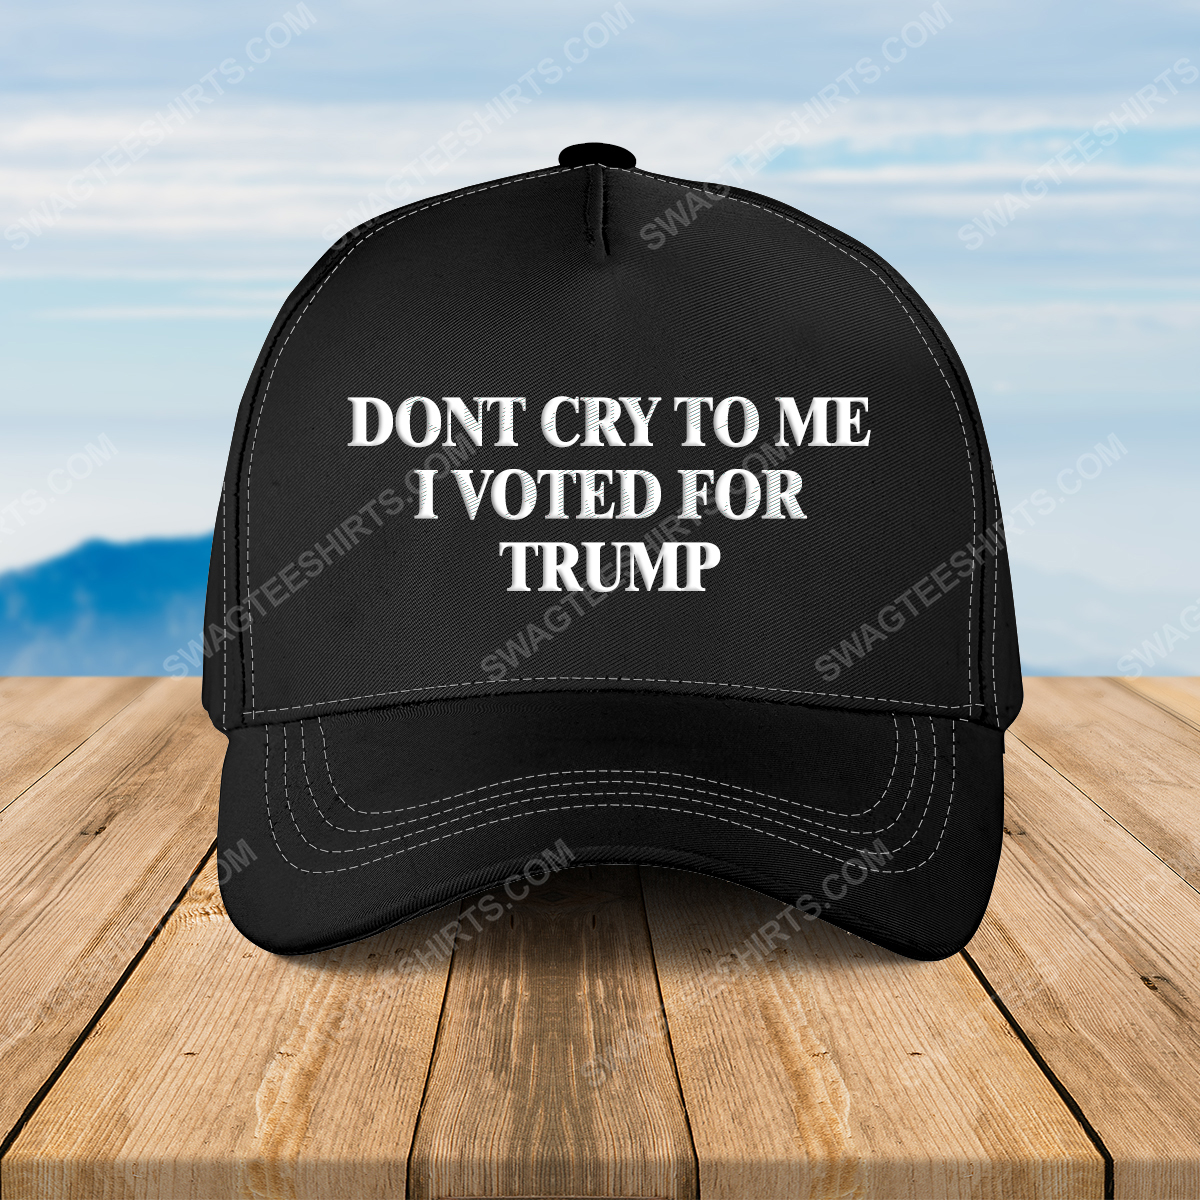 Camo don't cry to me i voted for trump full print classic hat 1 - Copy (2)